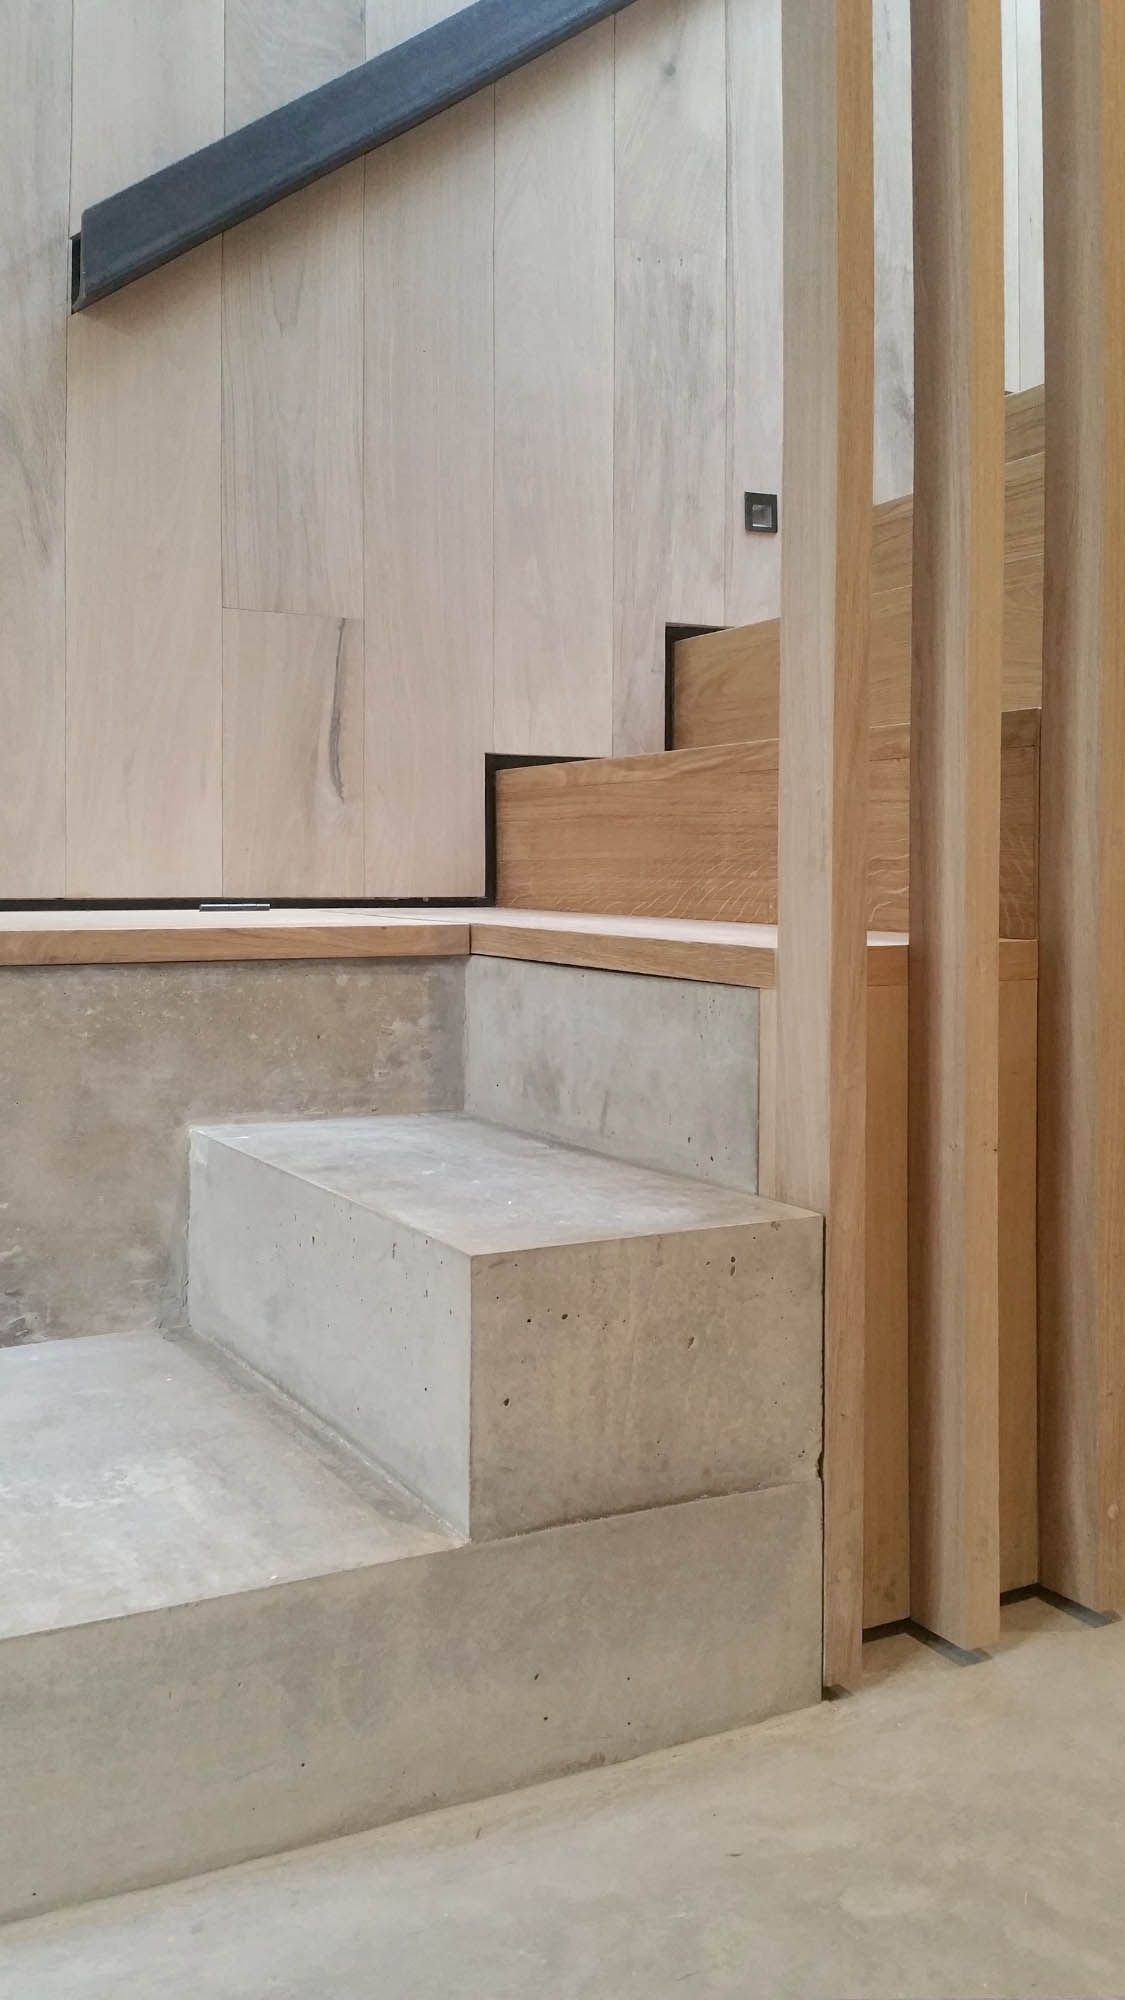 Best L3 304 Purpose Made Internal Stair Flights Rylett Studios Mclaren Excell Architects 400 x 300